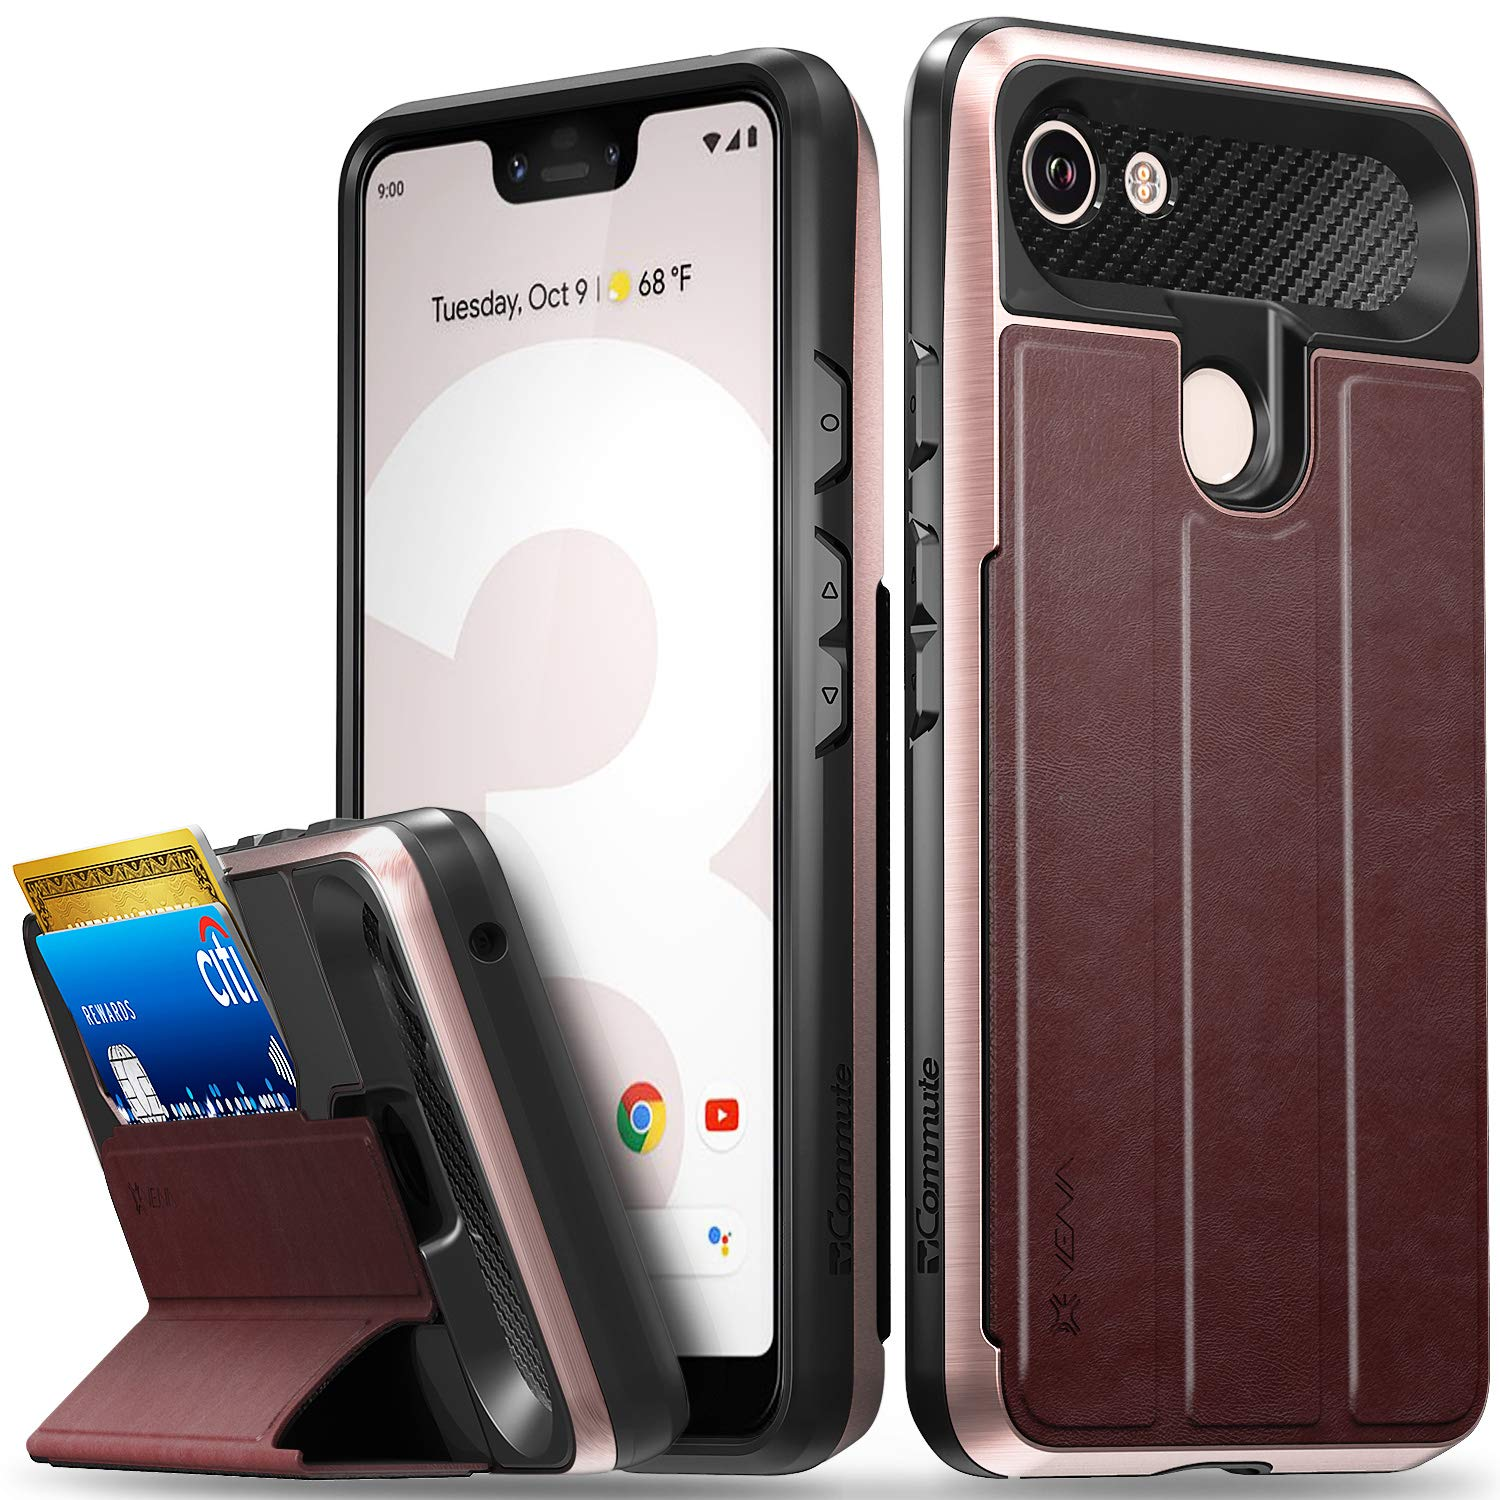 Vena Google Pixel 3 XL Wallet Case, [vCommute][Military Grade Drop Protection] Flip Leather Cover Card Slot Holder with Kickstand Compatible with Google Pixel 3 XL (Rose Gold)